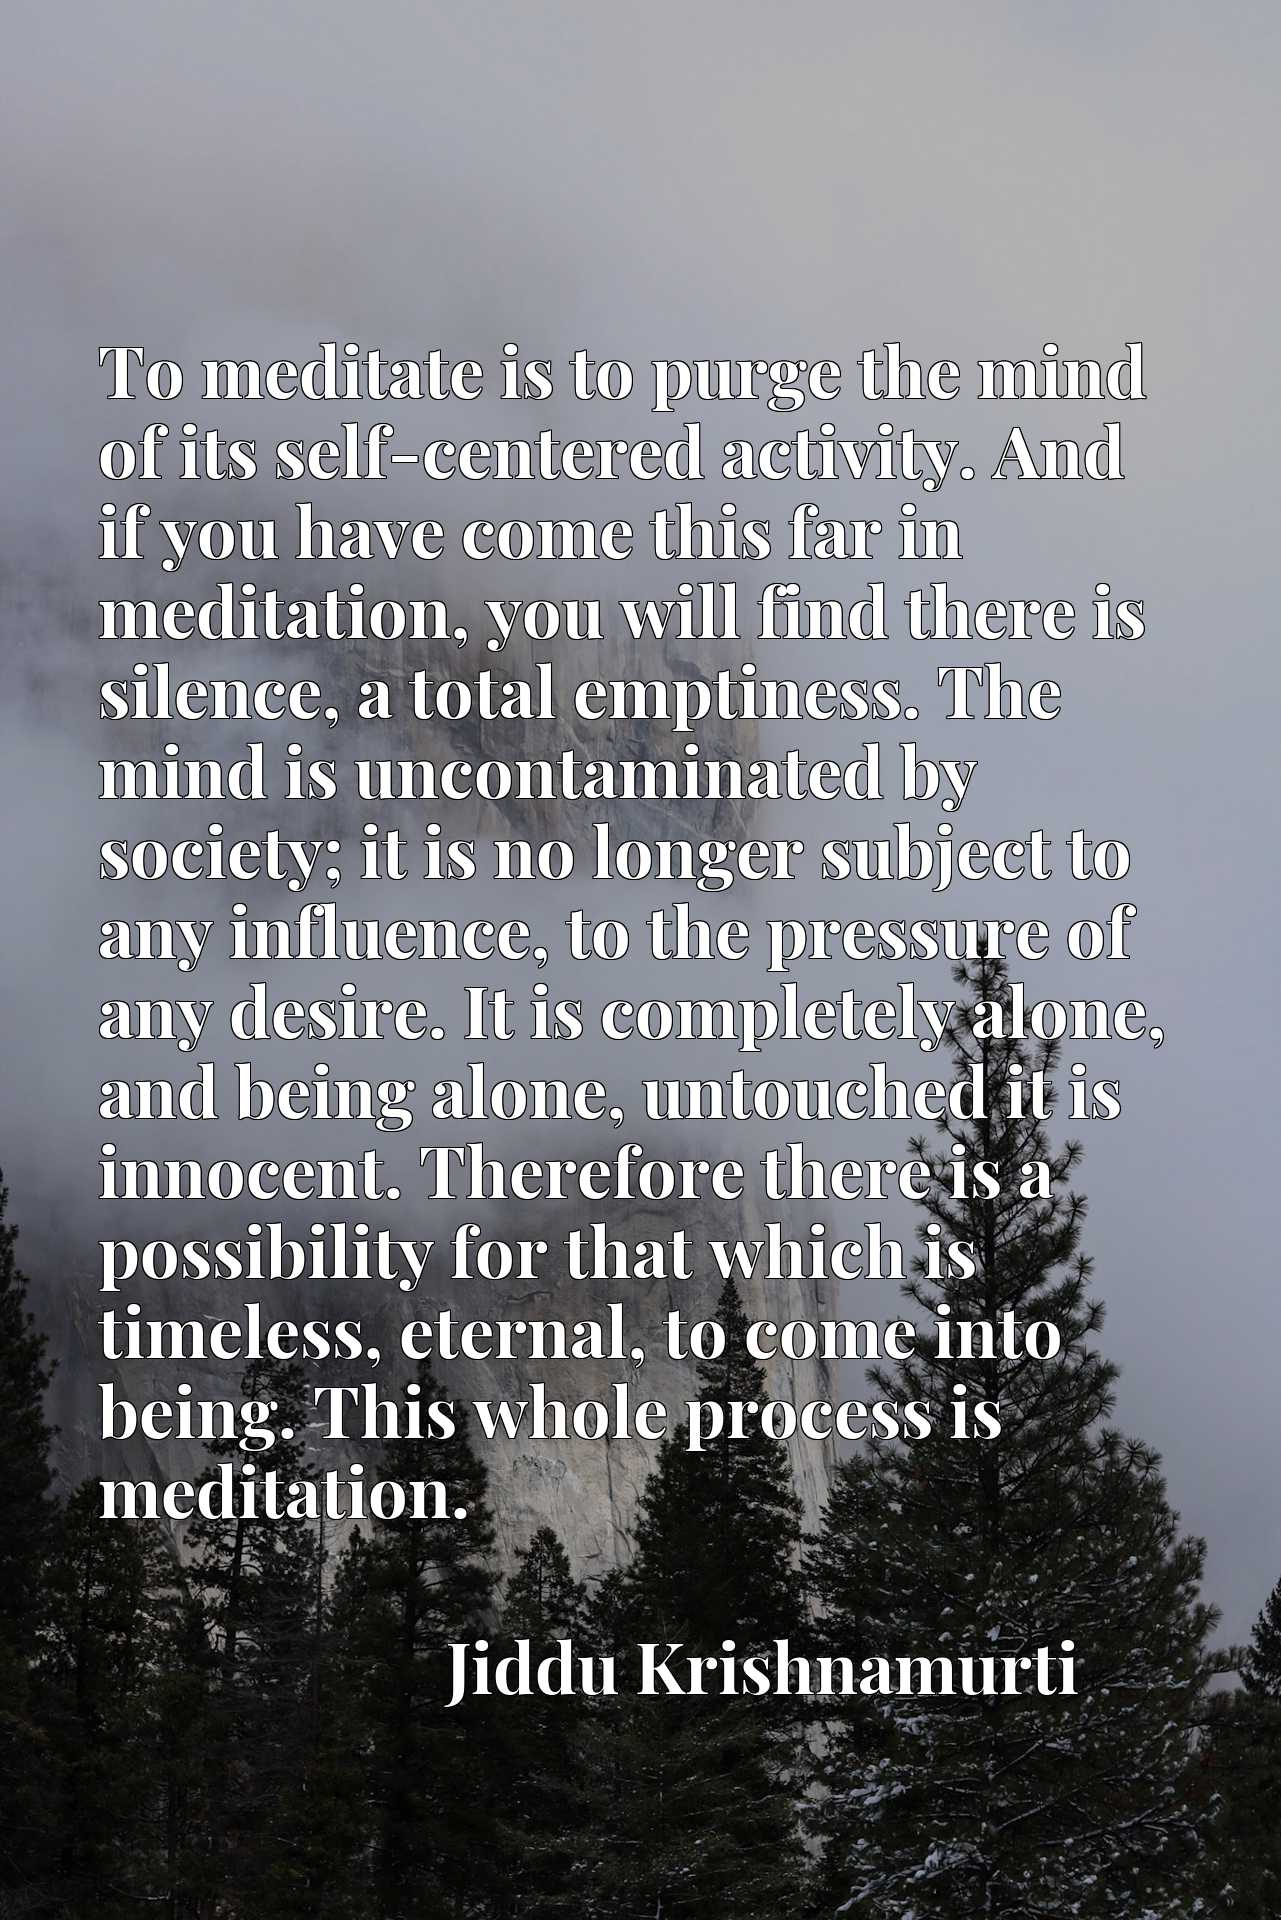 To meditate is to purge the mind of its self-centered activity. And if you have come this far in meditation, you will find there is silence, a total emptiness. The mind is uncontaminated by society; it is no longer subject to any influence, to the pressure of any desire. It is completely alone, and being alone, untouched it is innocent. Therefore there is a possibility for that which is timeless, eternal, to come into being. This whole process is meditation.